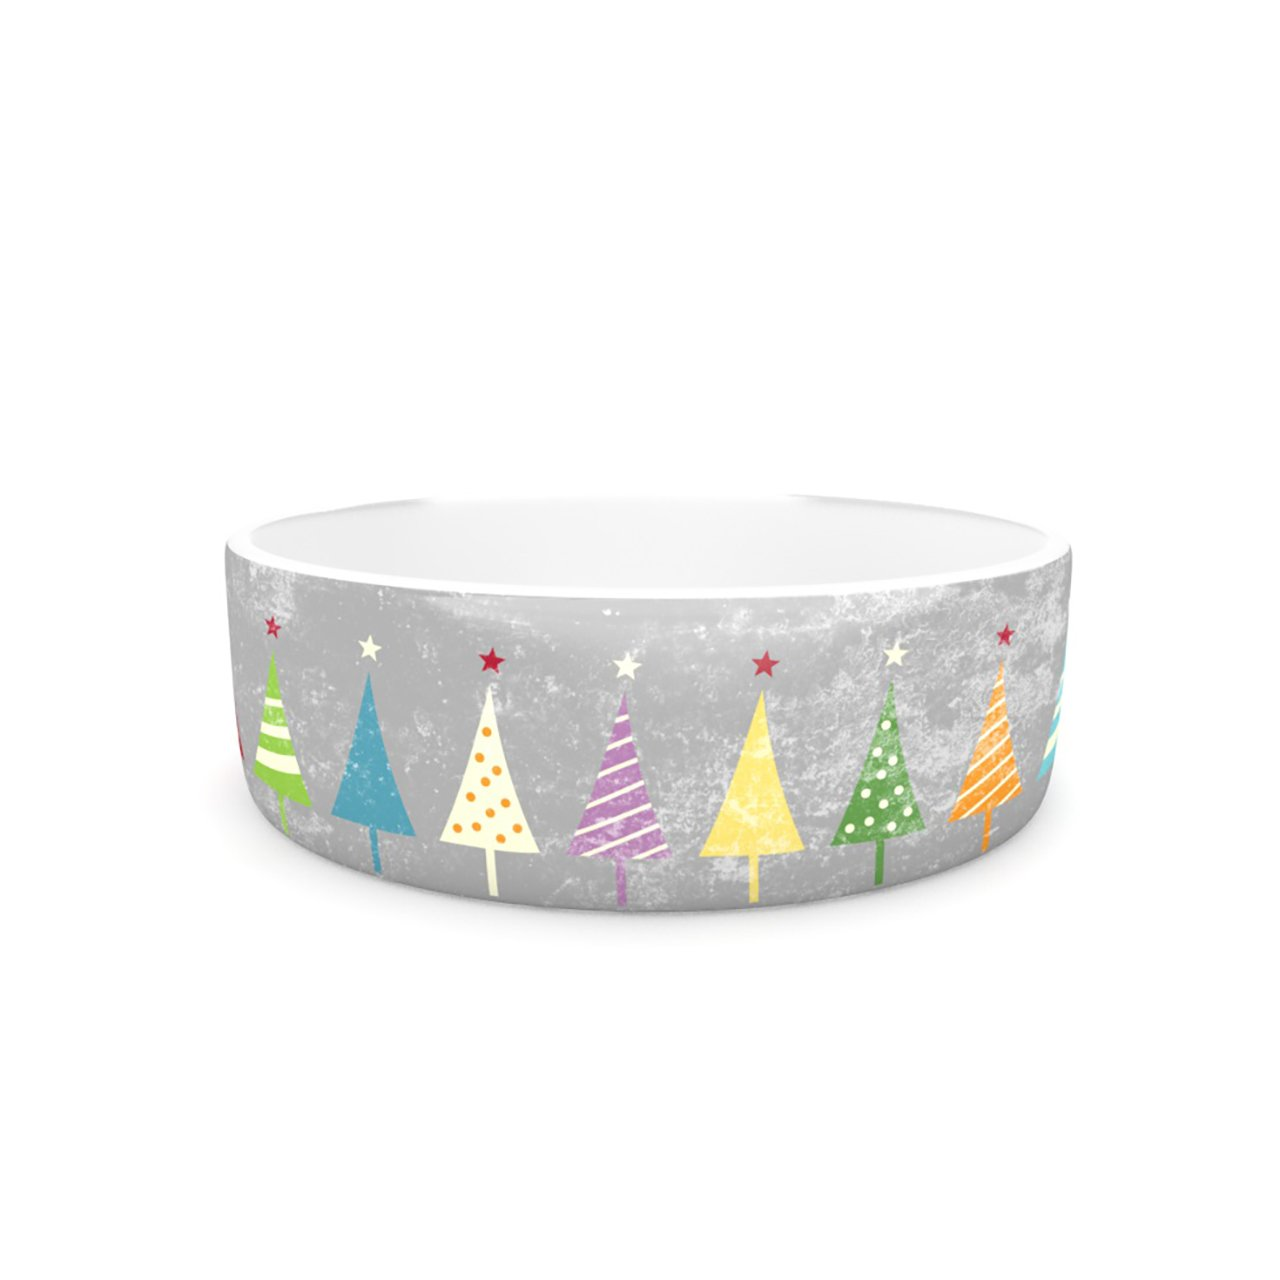 Kess InHouse Snap Studio Crazy Trees Frost  Pet Bowl, 7-Inch, Rainbow